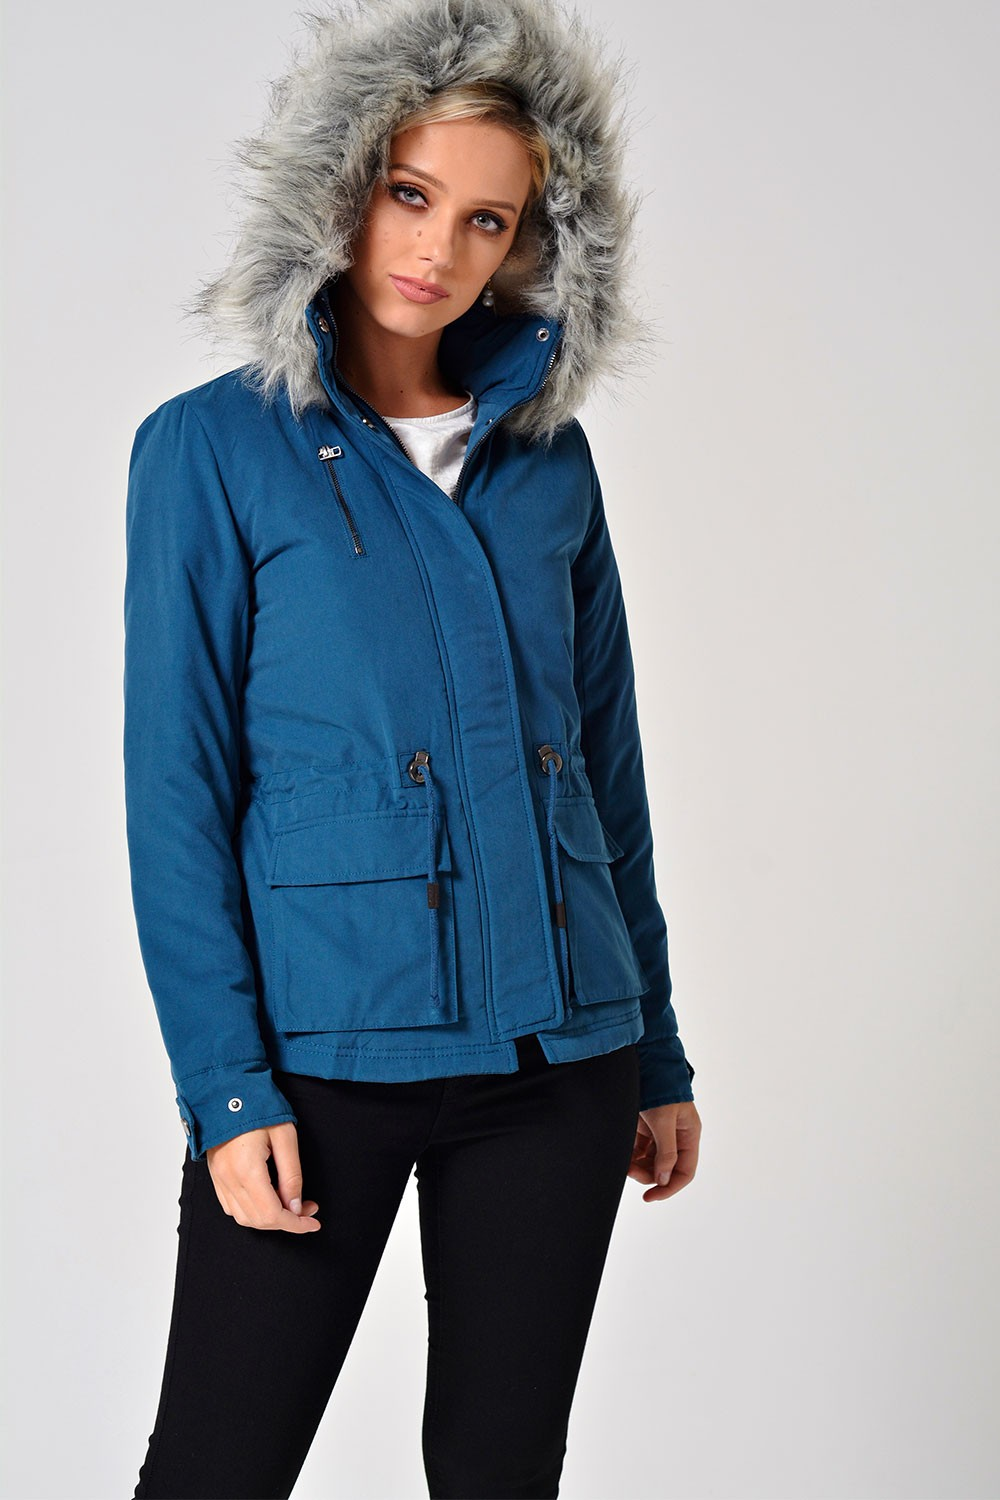 Only Starlight Short Fur Parka Coat in Teal | iCLOTHING